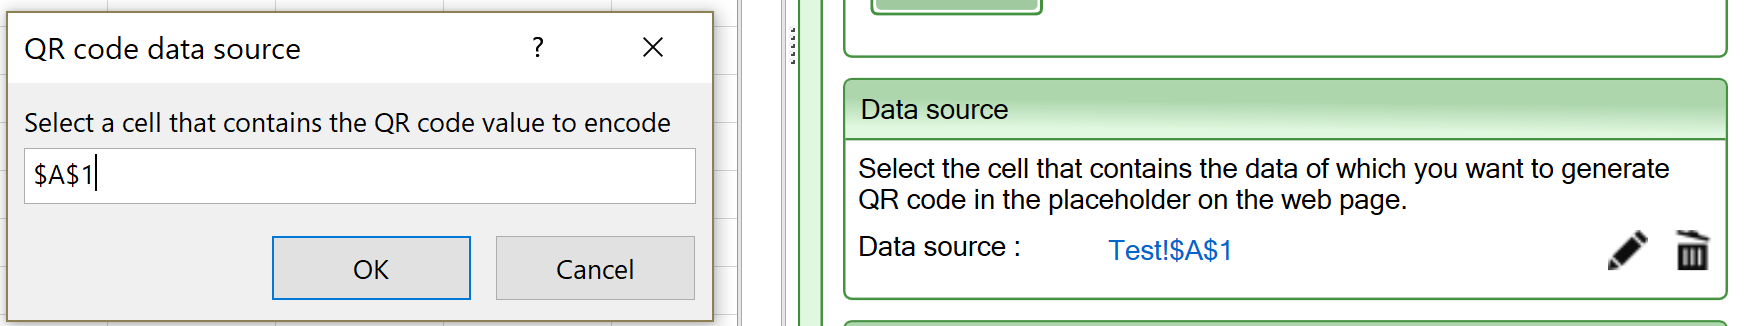 Screenshot of the Data source setting for the QR code widget